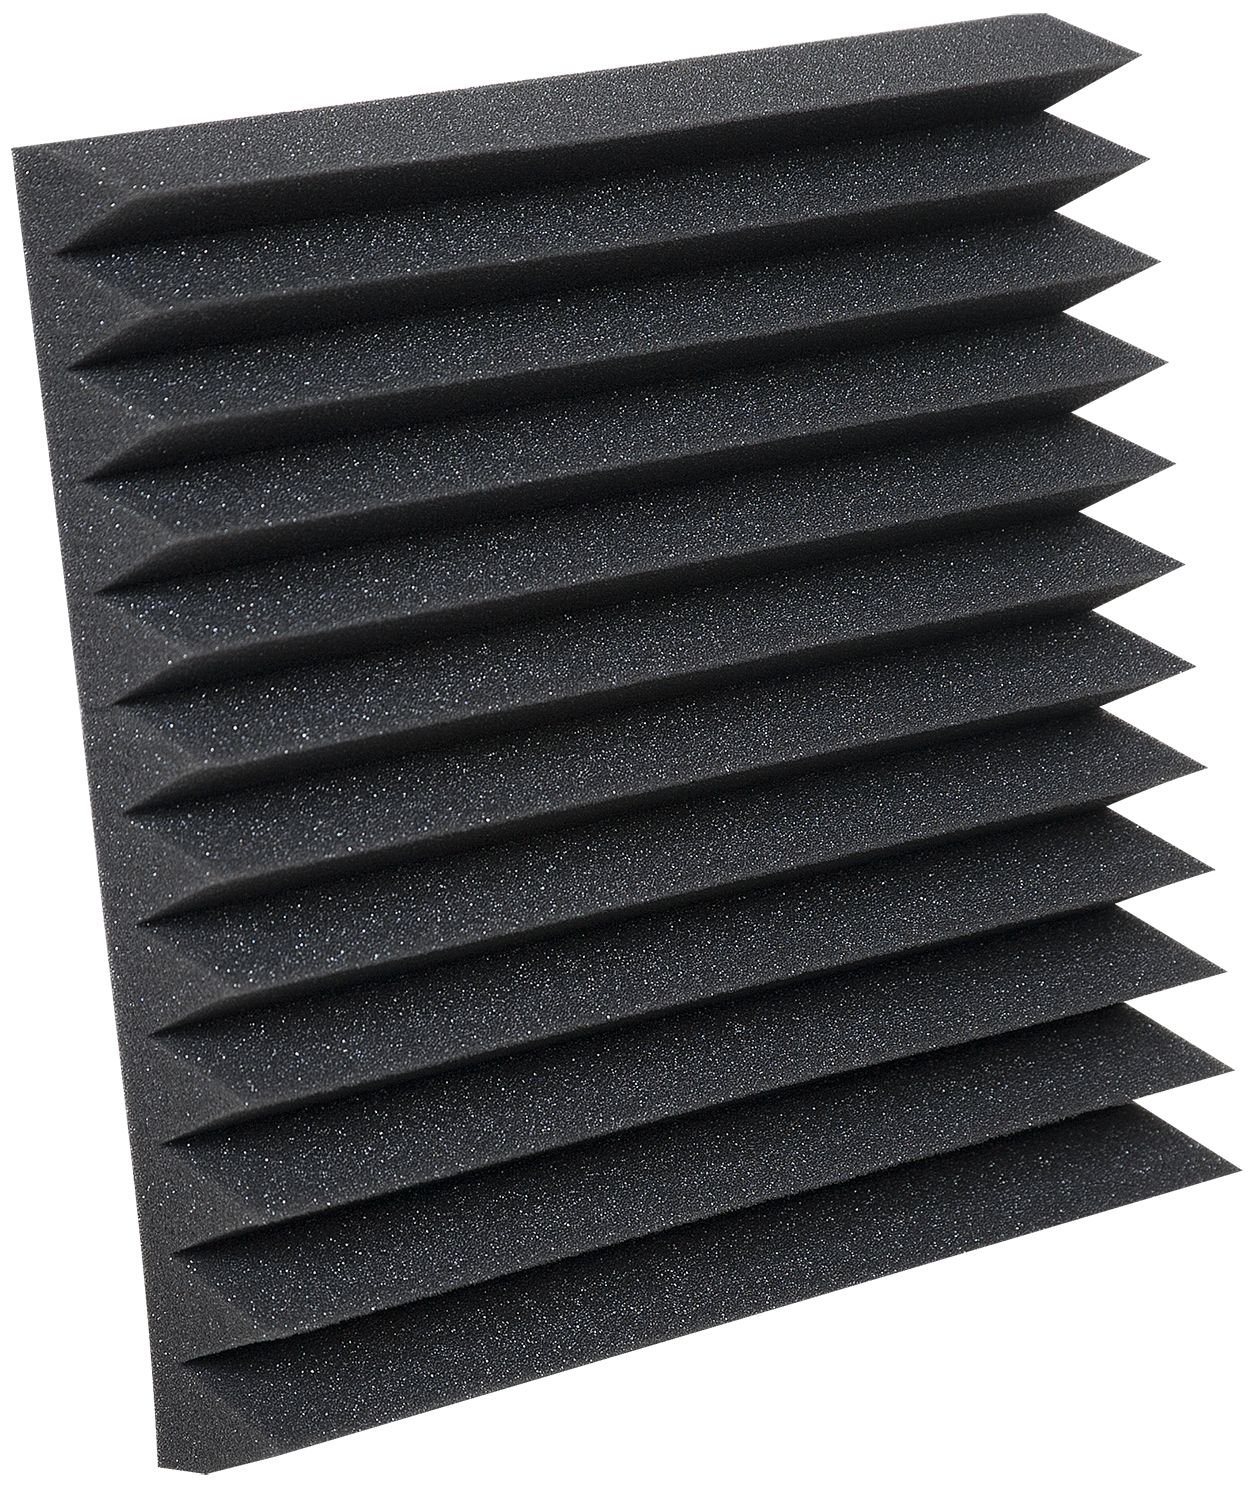 Auralex Studiofoam Wedgies 2 Inches Thick and 1 foot by 1 Foot Acoustic Absorption Foam, Charcoal, 24-count Auralex Acoustics WEDGIE-24